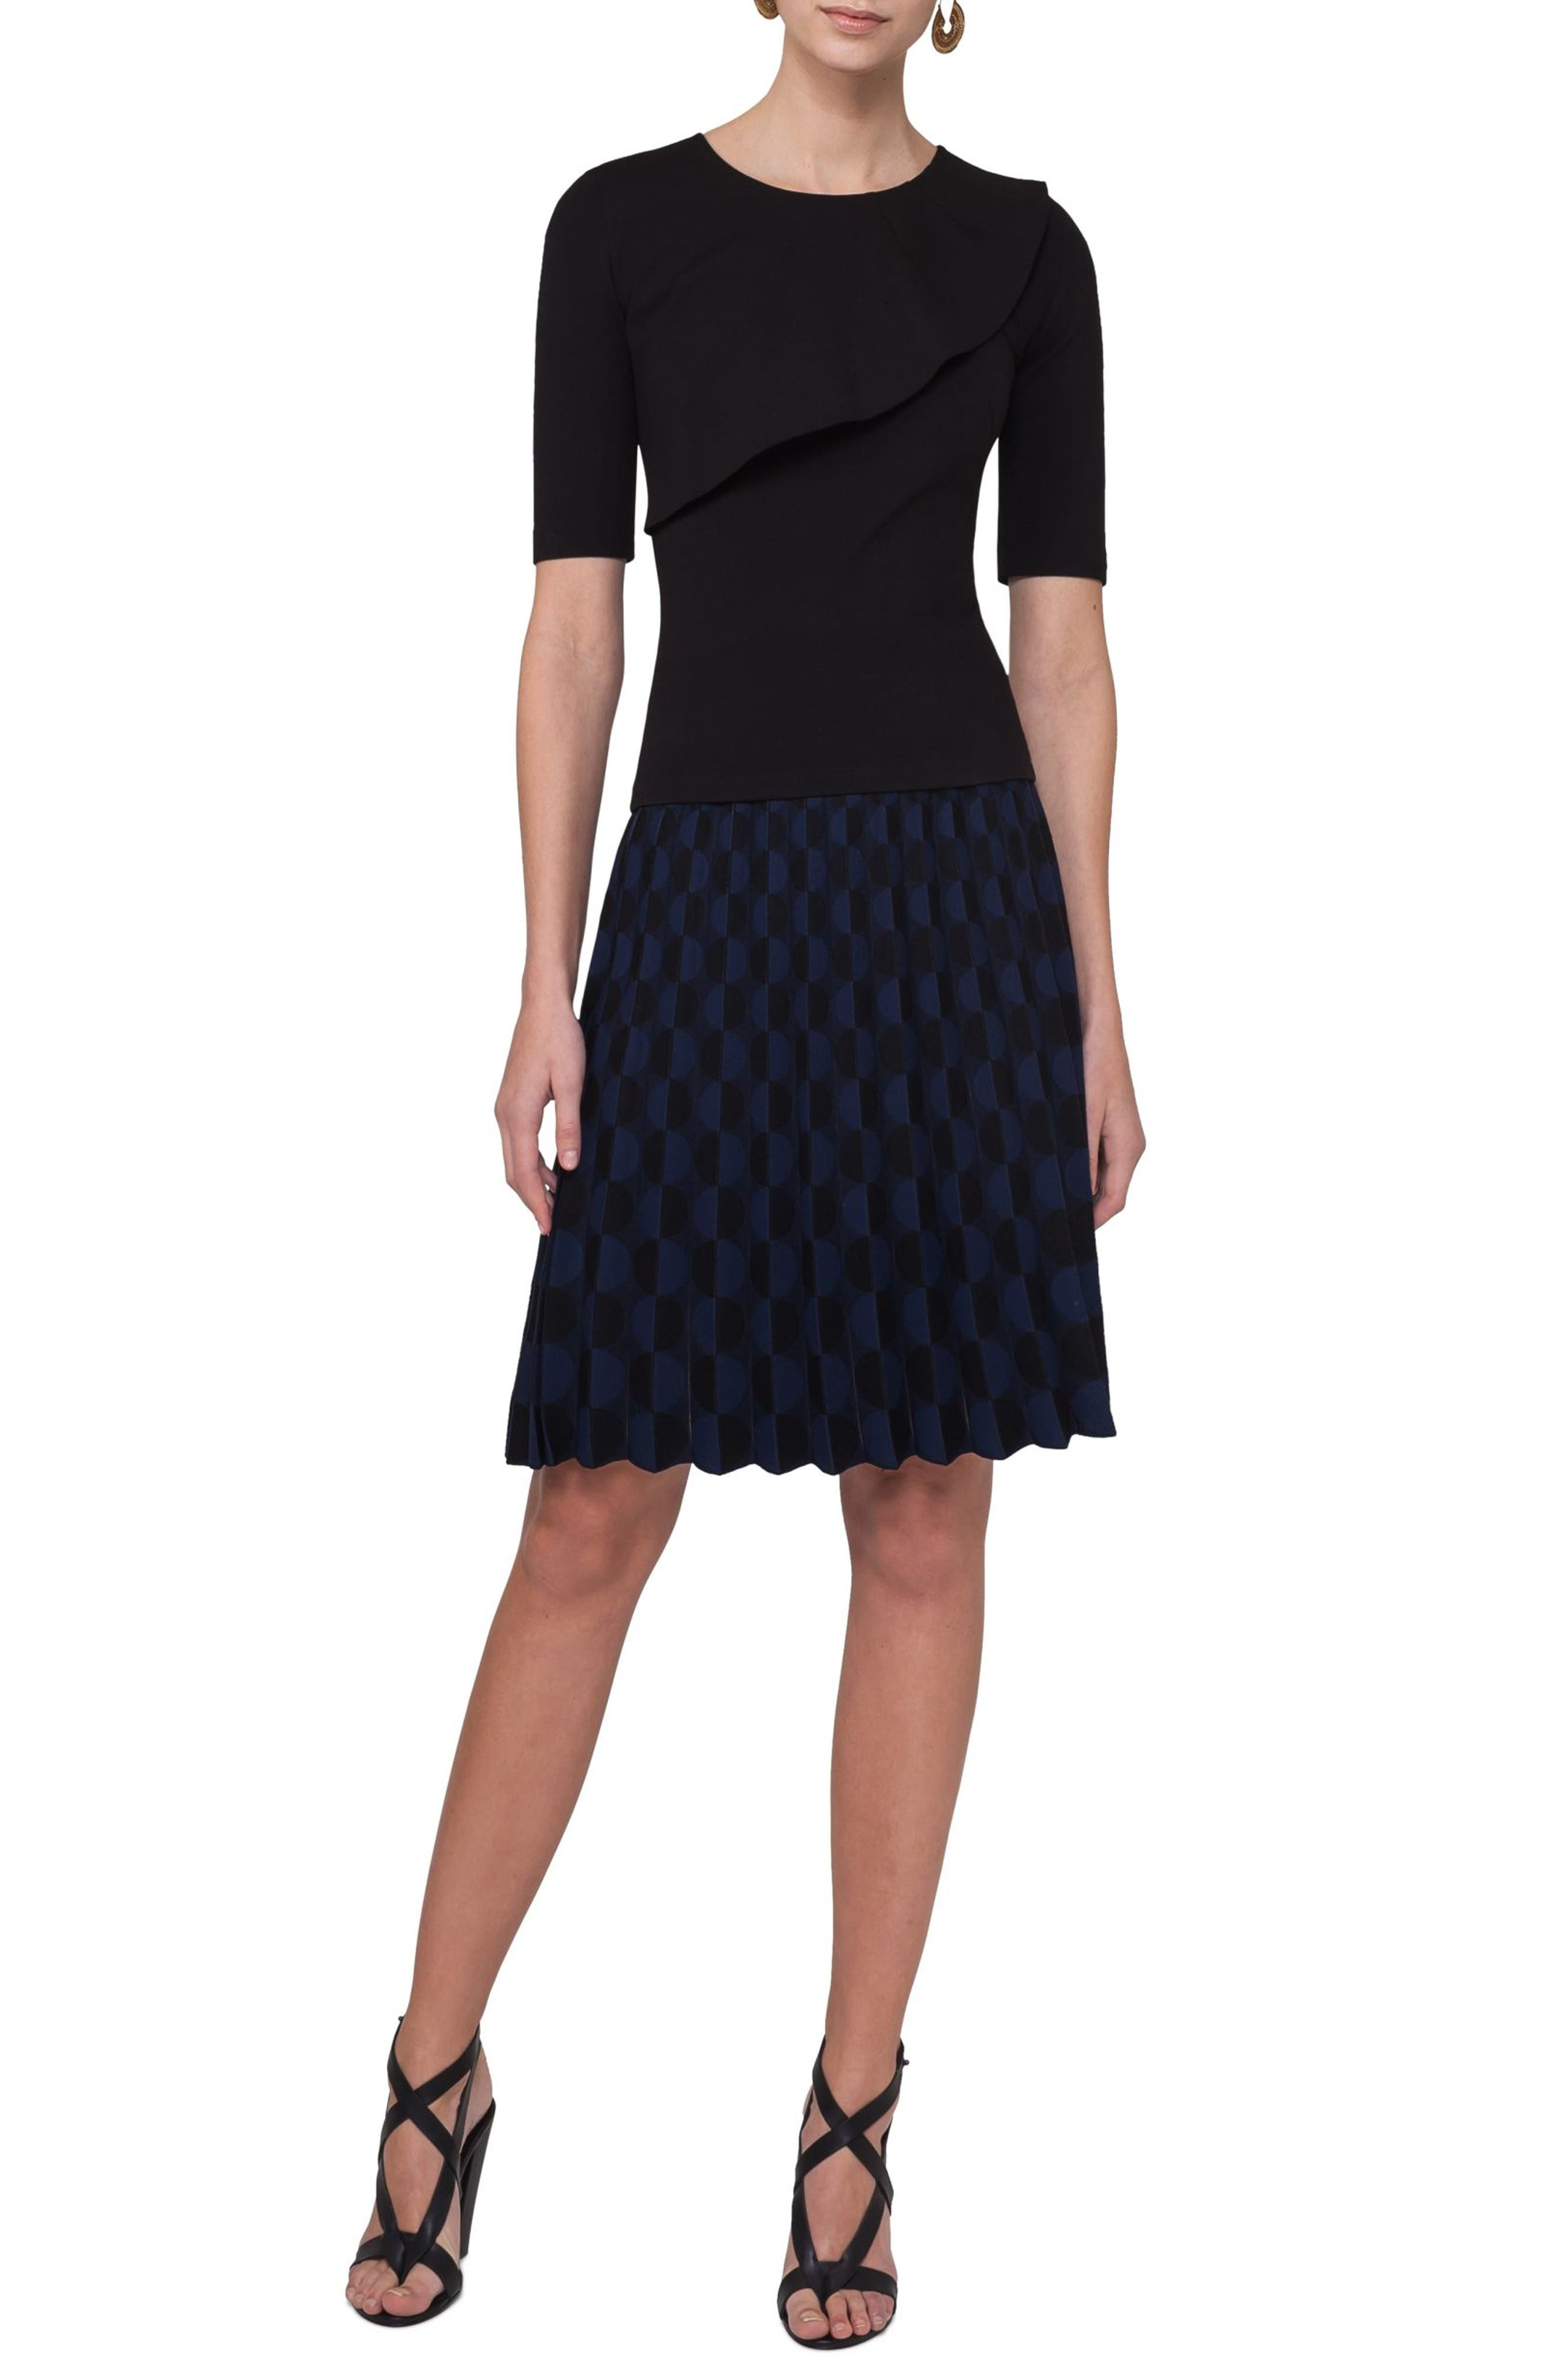 Contrast Dot Knit Pleated Skirt,                             Alternate thumbnail 3, color,                             Black/ Blue